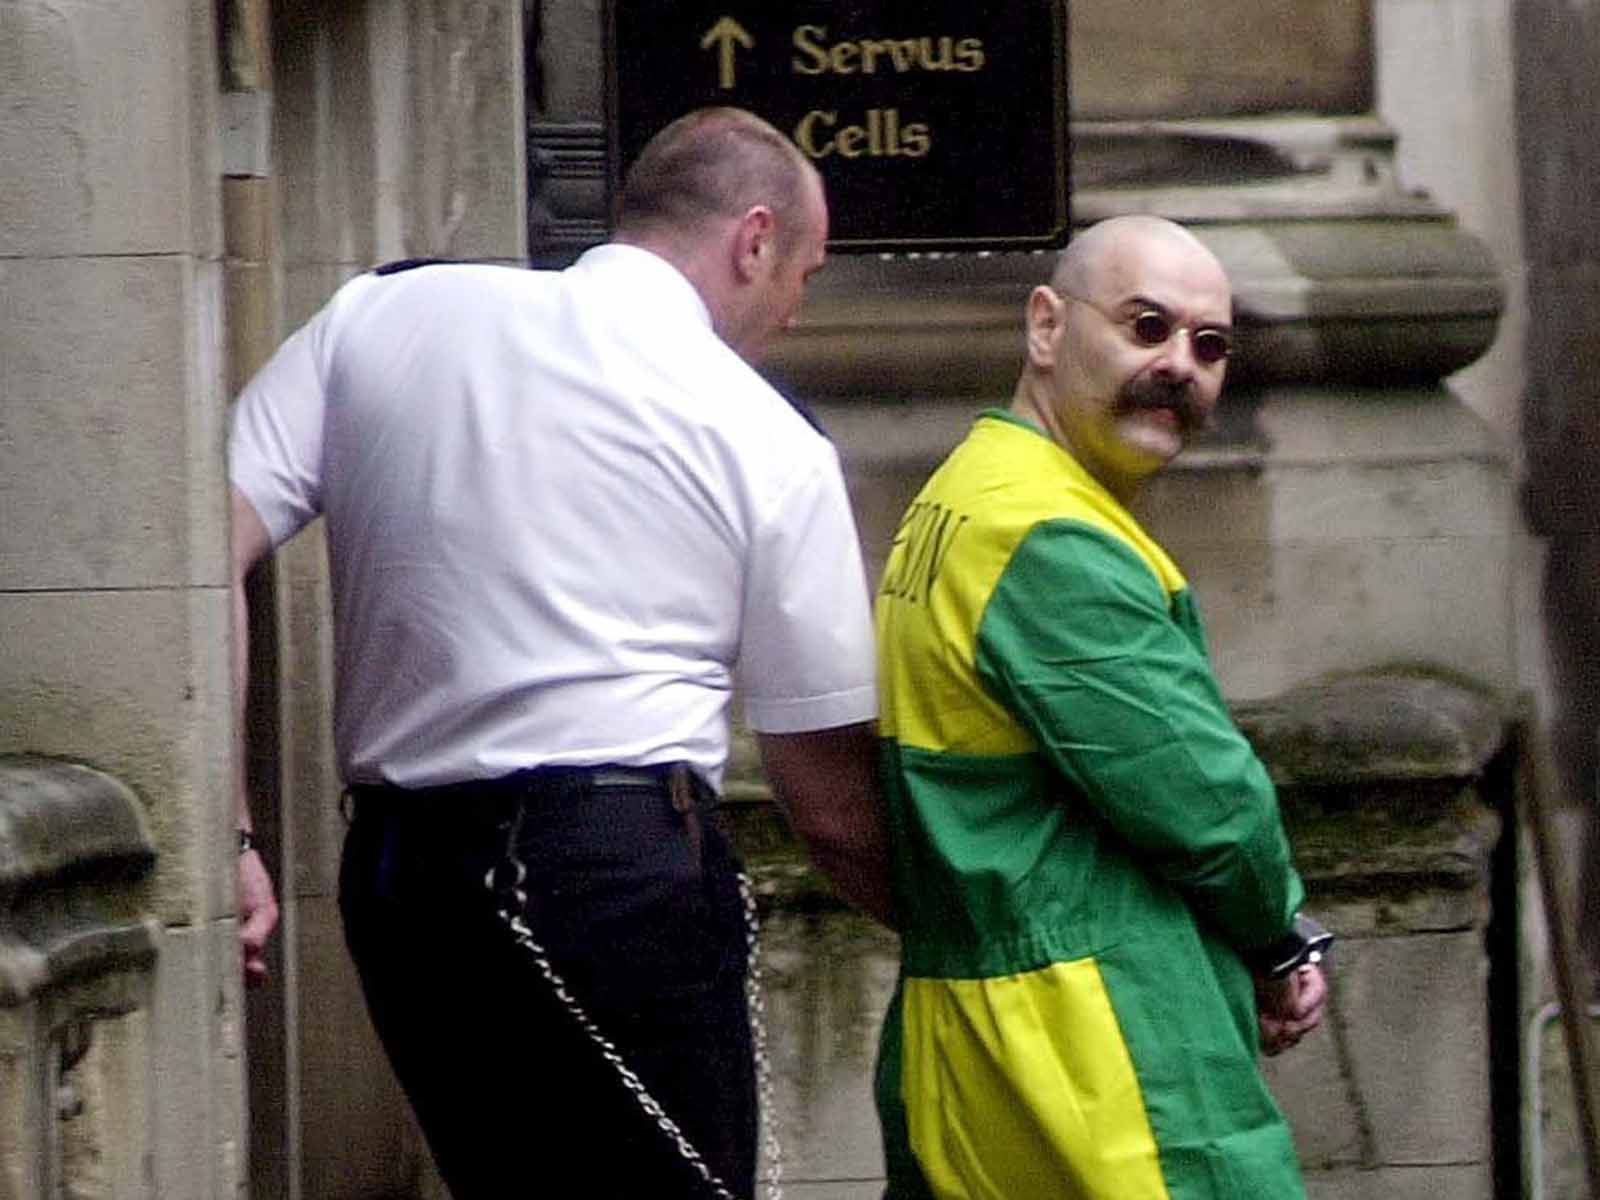 Taking the name of the famous actor, Charles Bronson has been raising hell as a prisoner in UK's prison system for over 40 years.